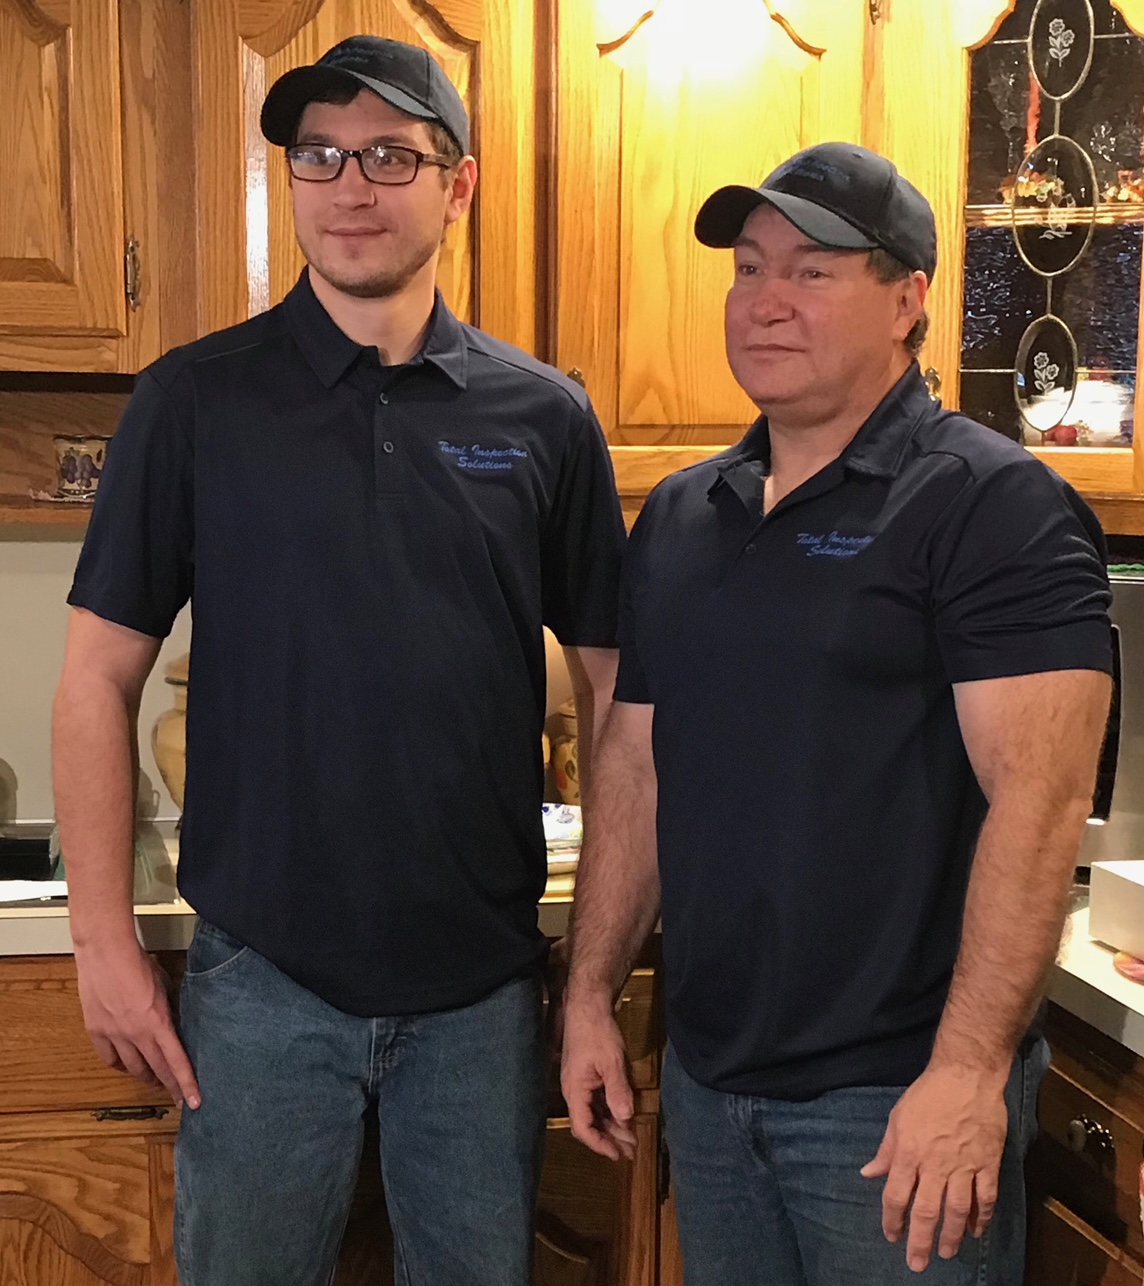 Owners Total Inspection